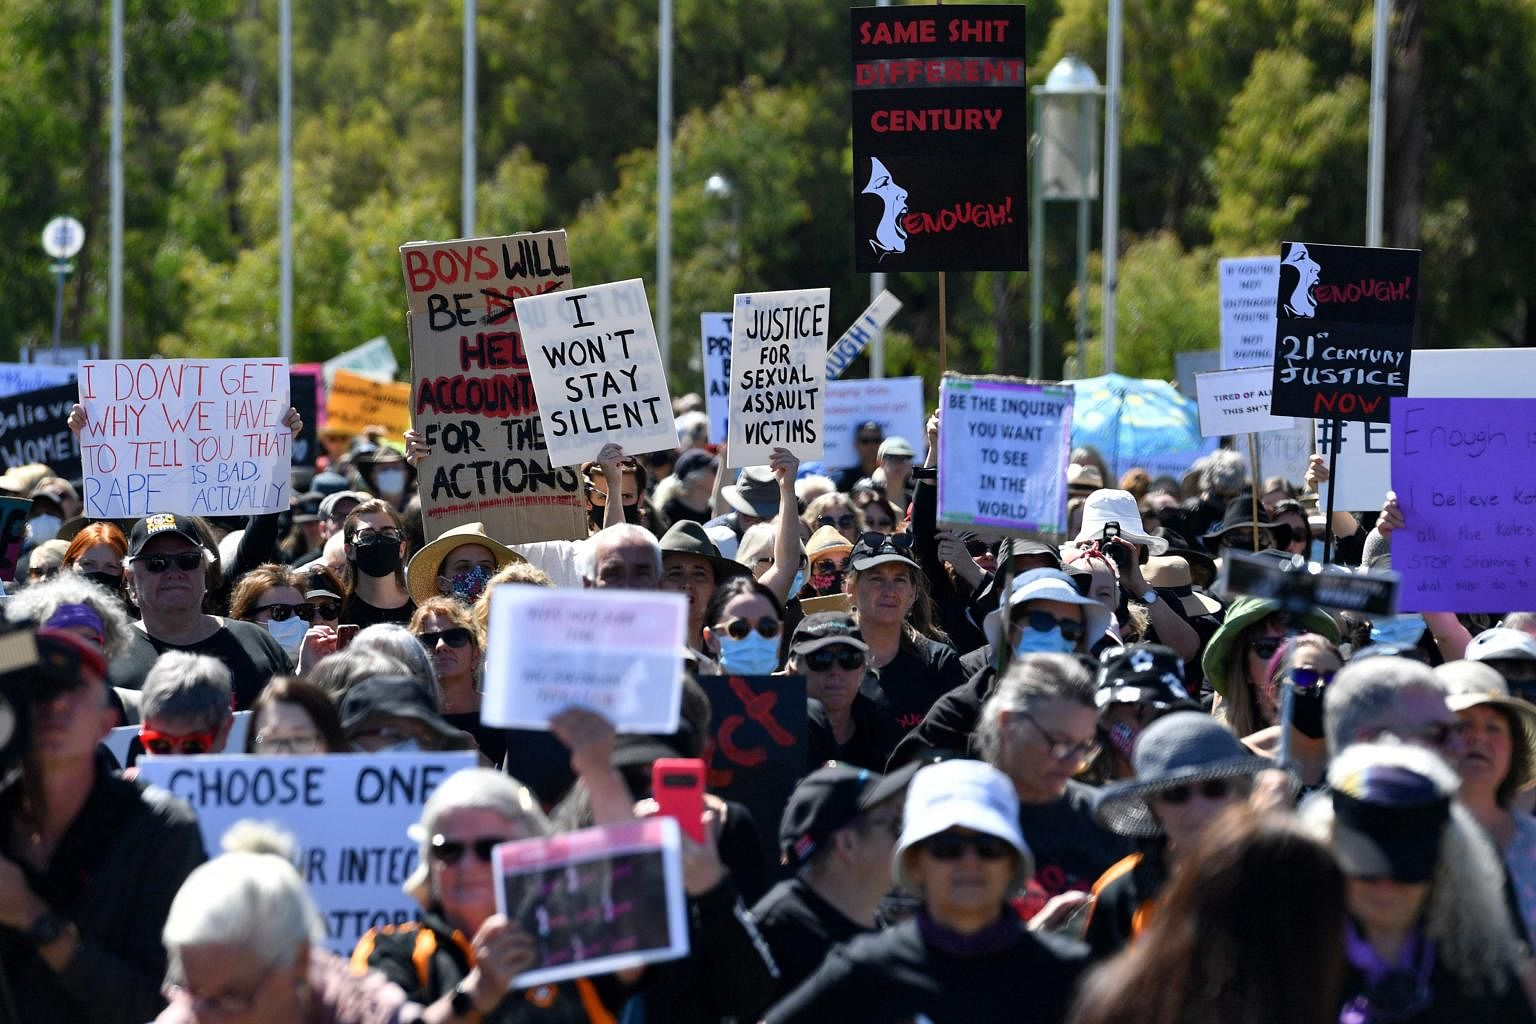 Protesters attend a rally against sexual violence and gender inequality in Canberra